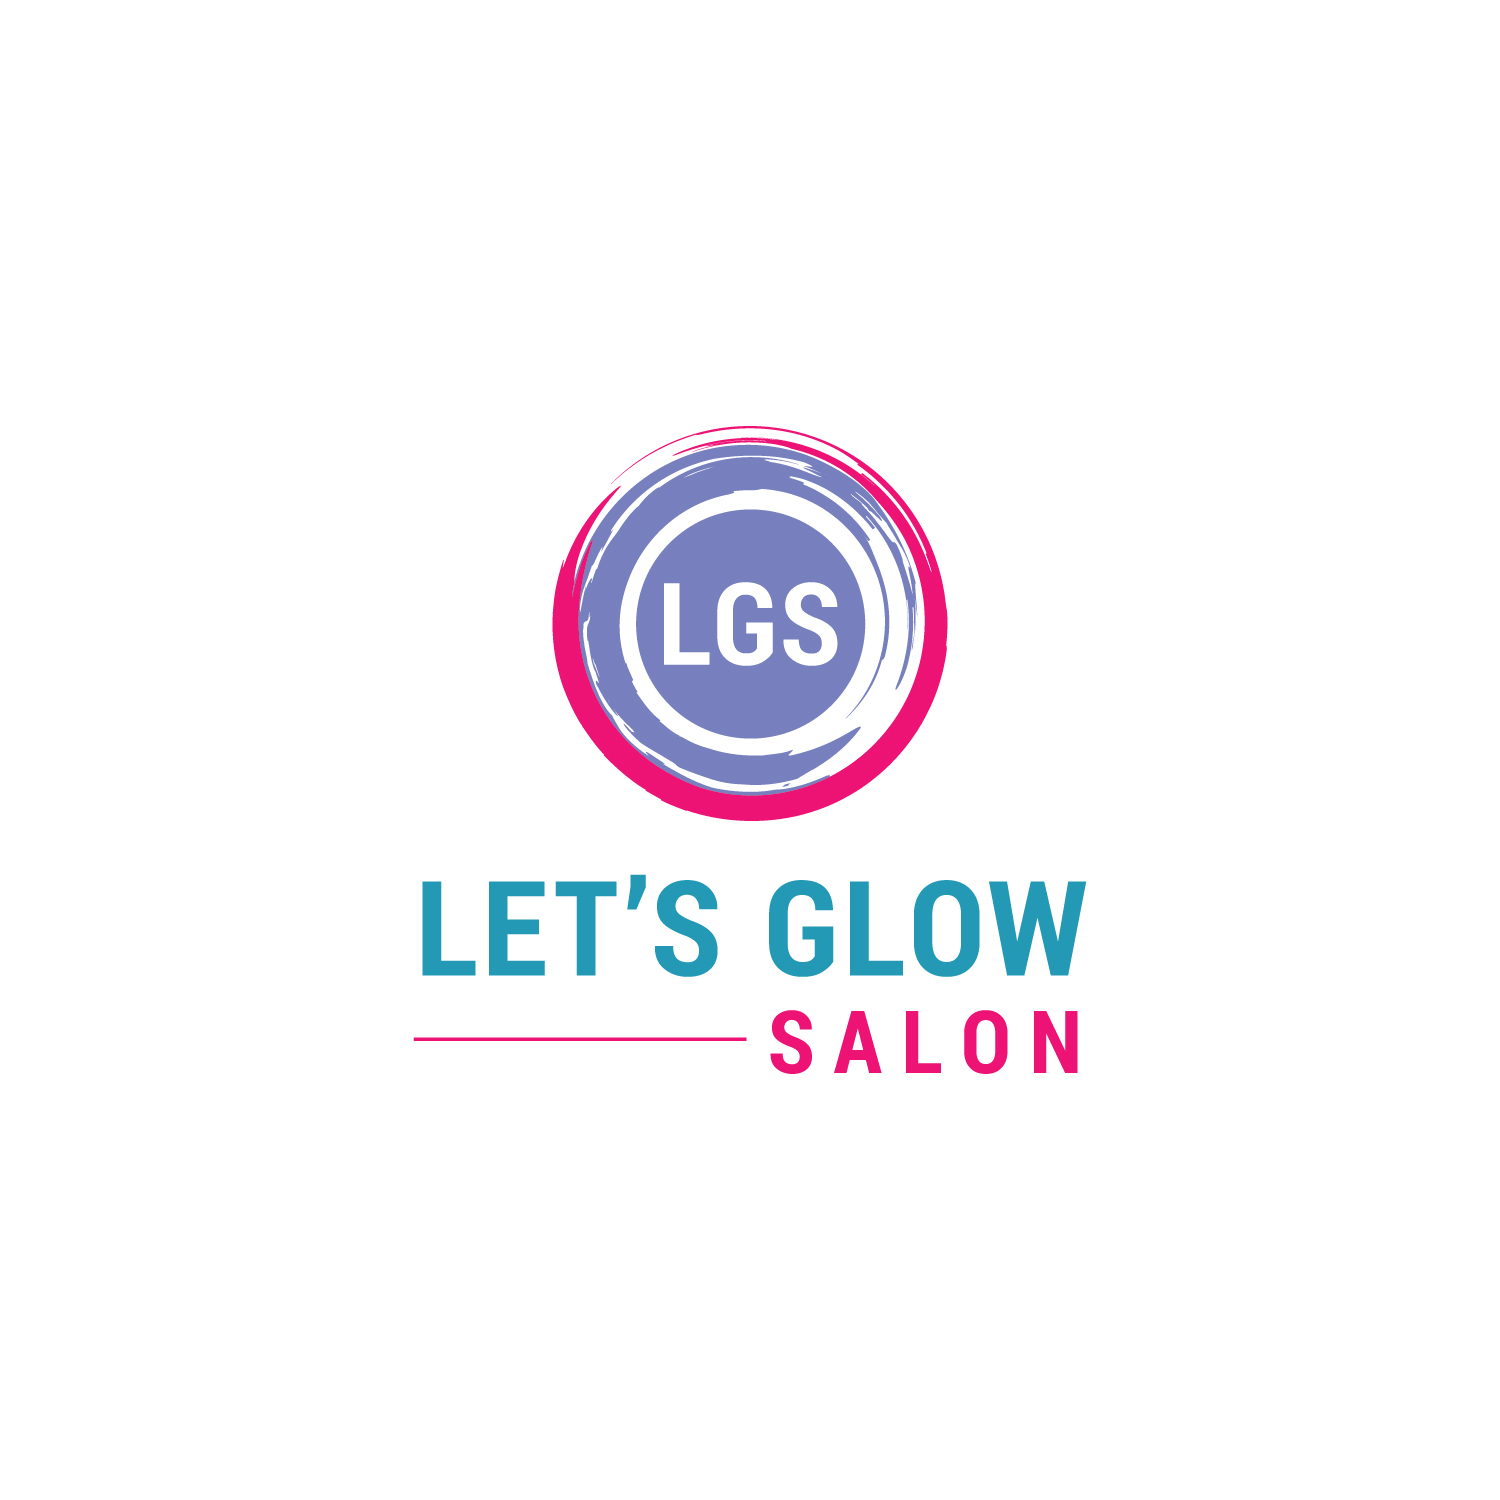 professional serious beauty salon logo design for the salon s name